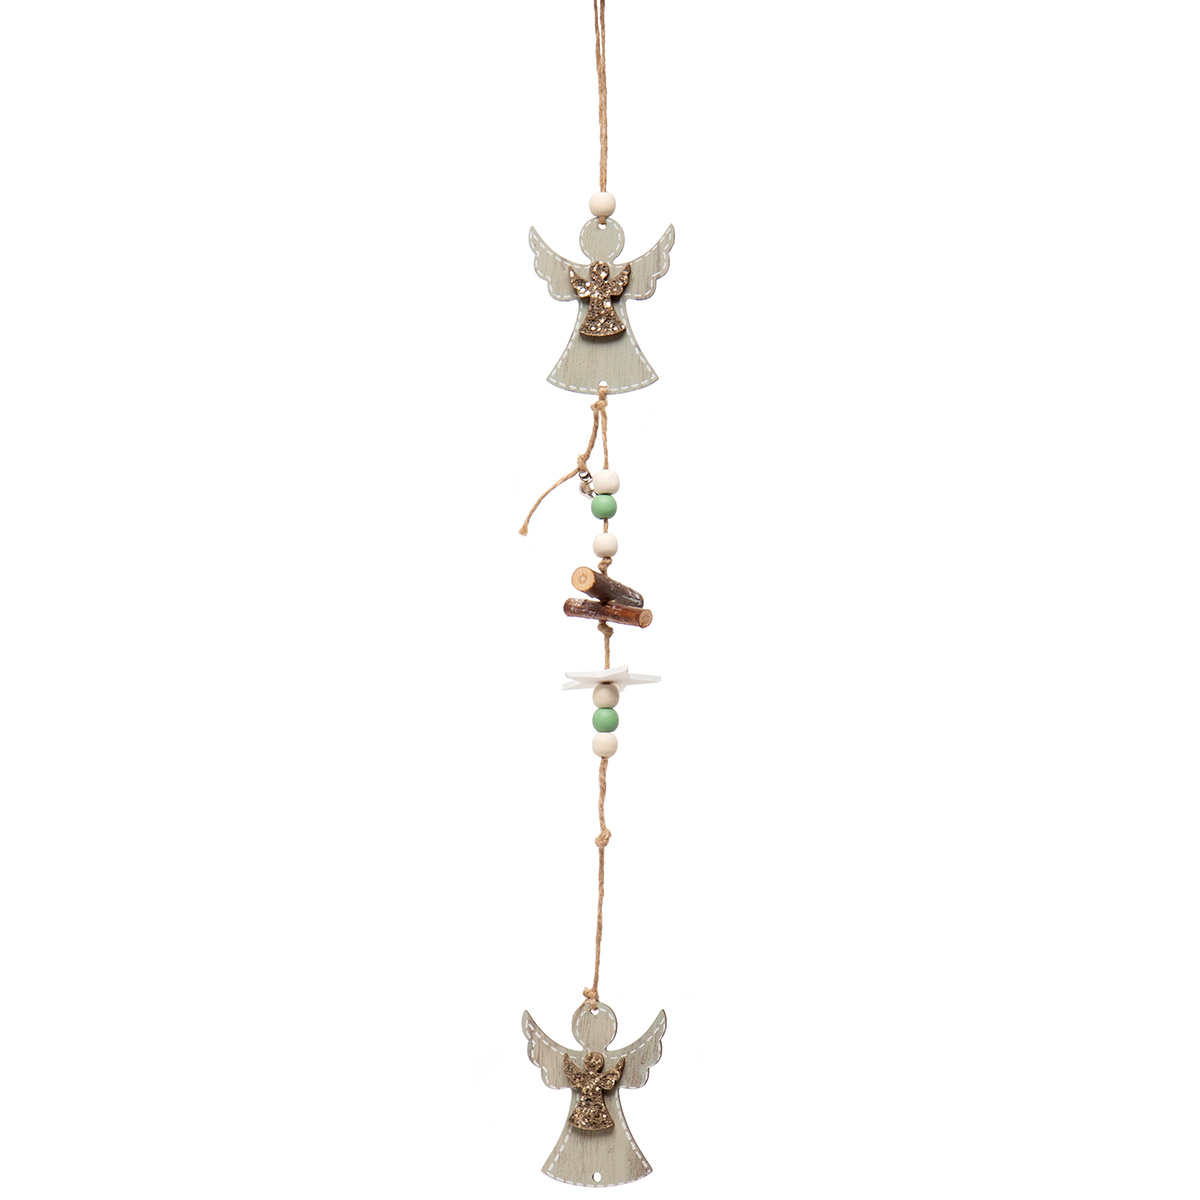 ANGEL DANGLE WOOD ORNAMENT WITH STAR, BEADS, JINGLE